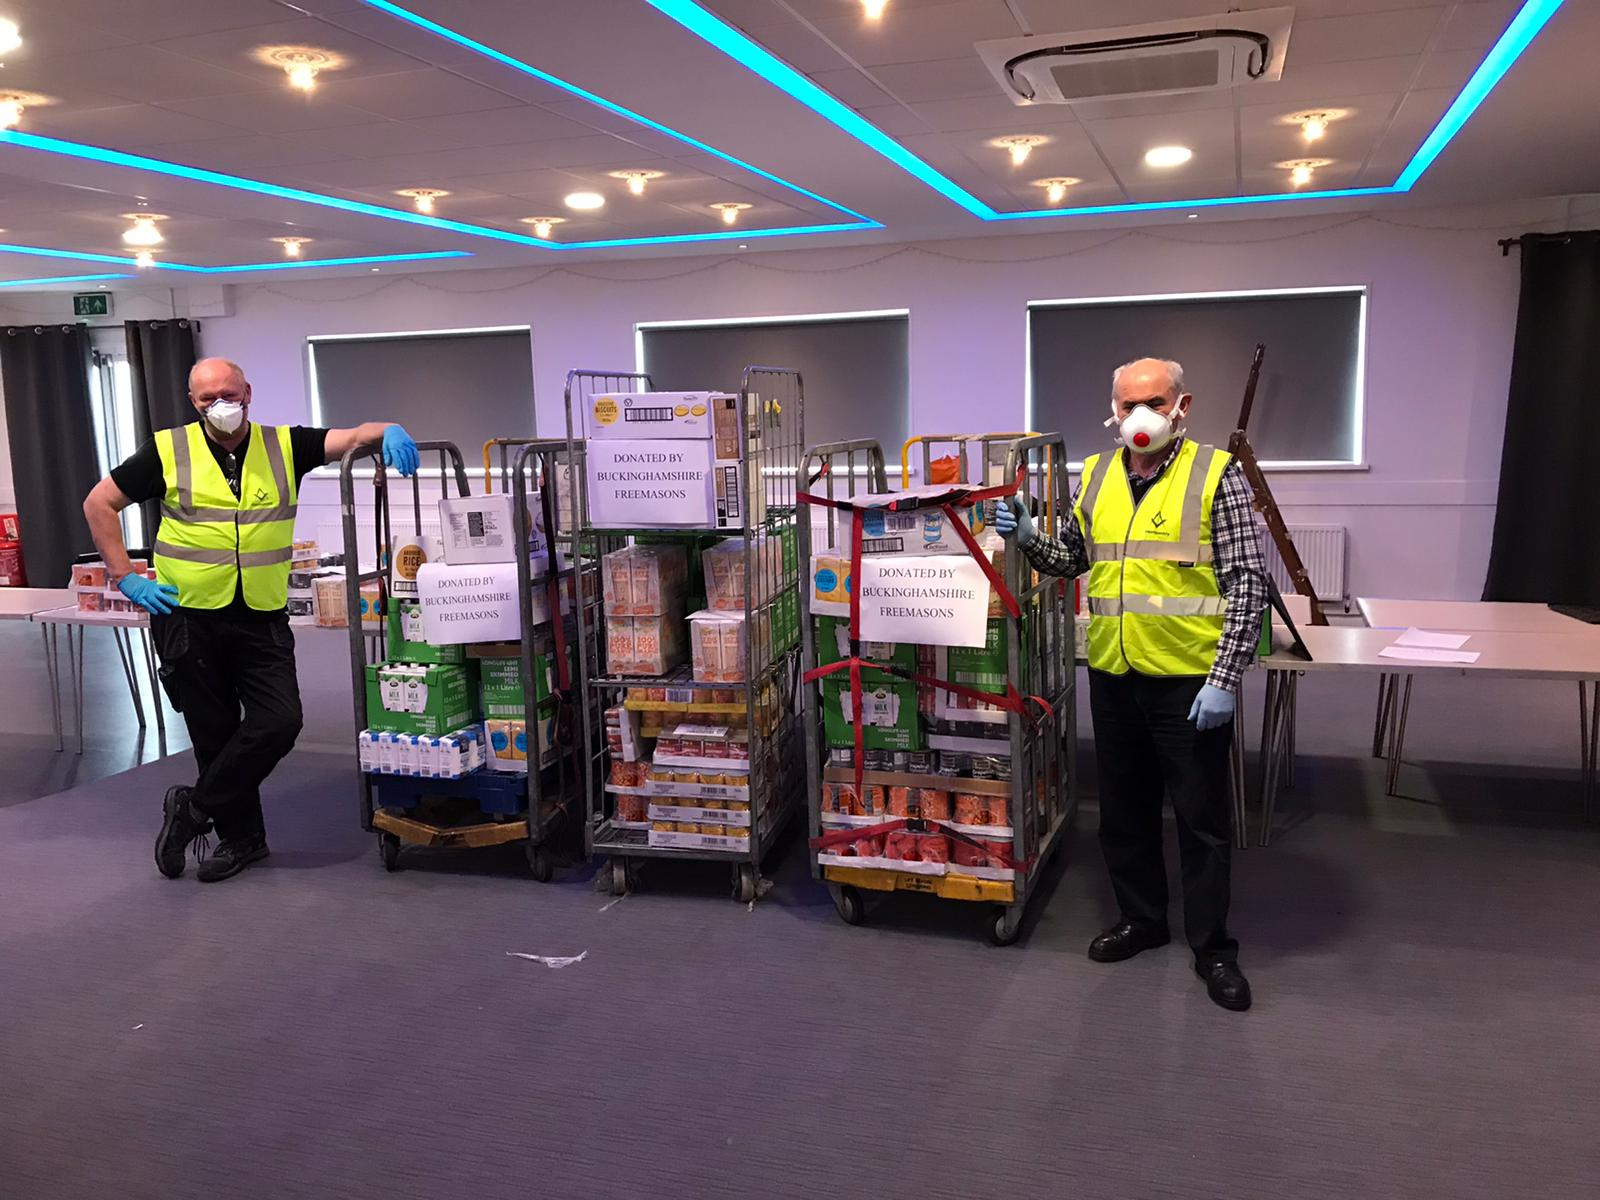 England - Freemasons charity endeavours during Covid 19 include 18 million hours of volunteering